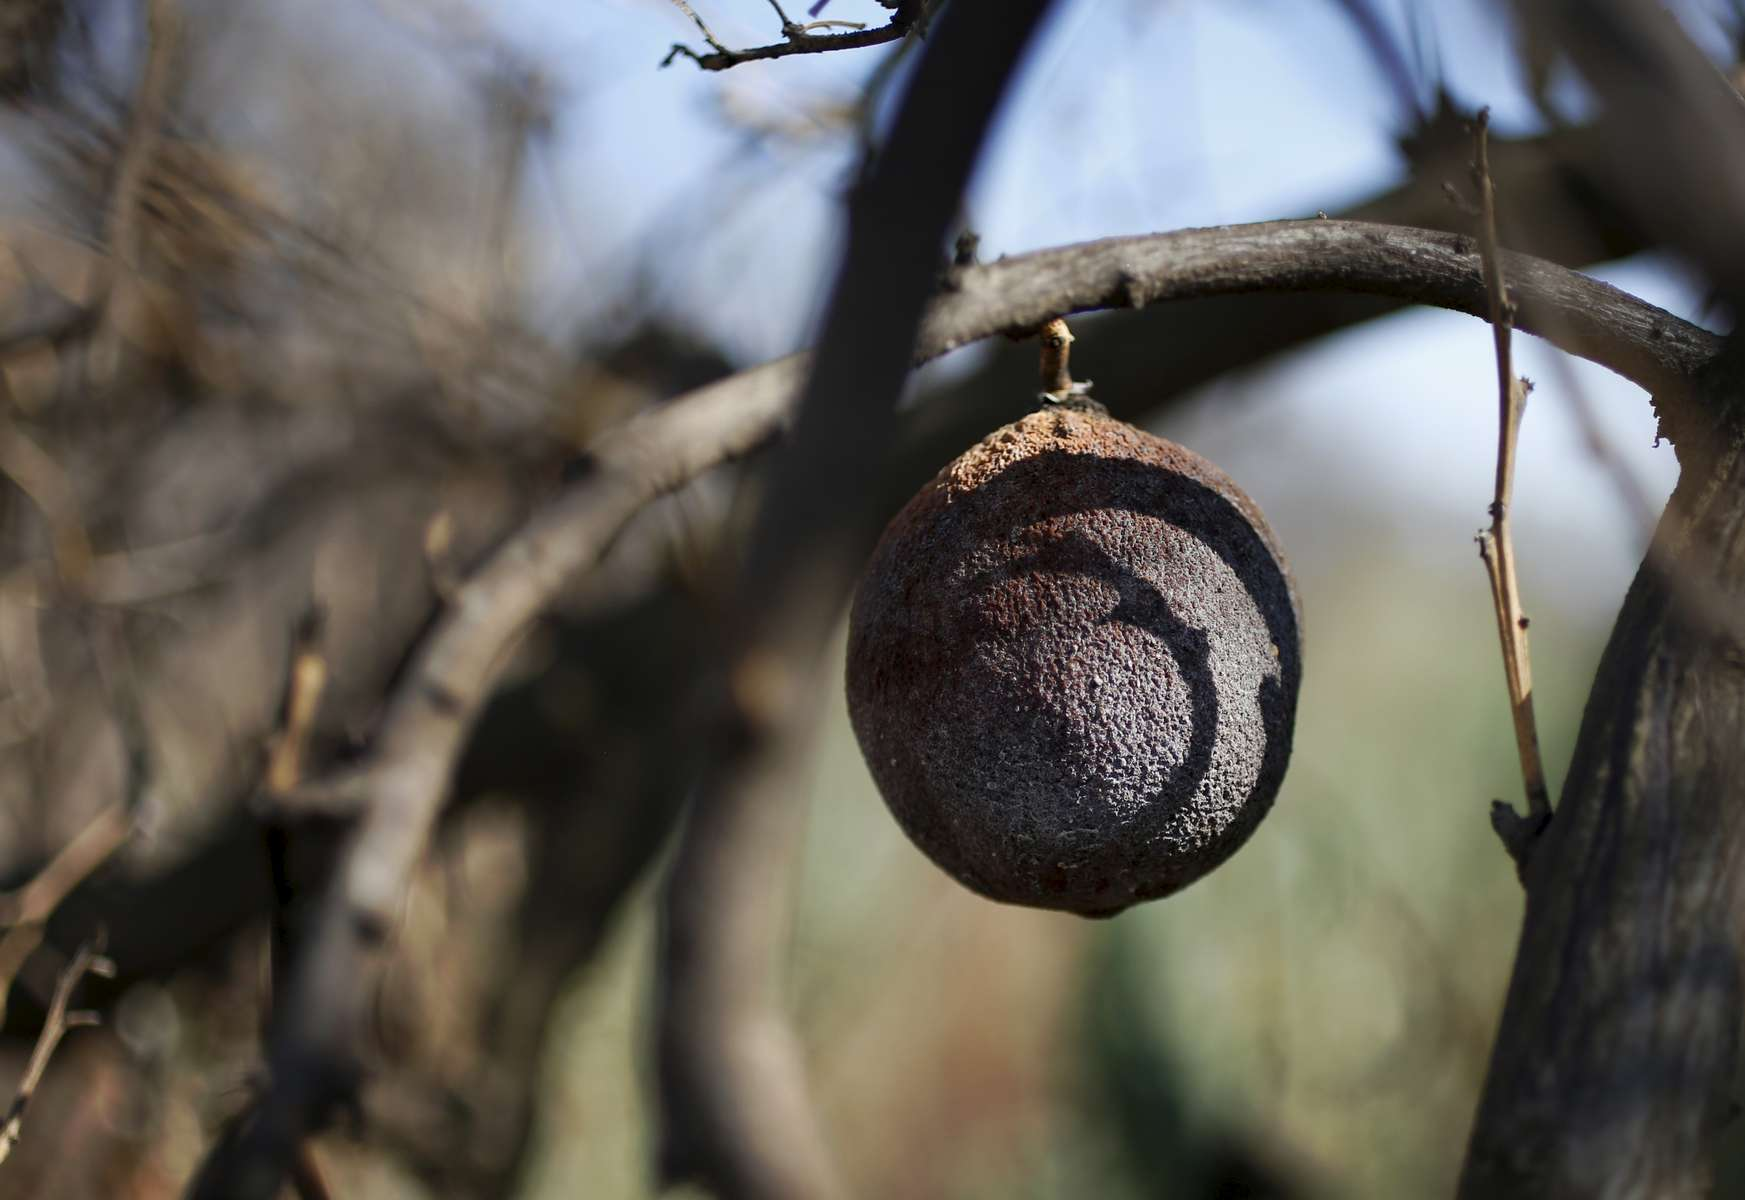 A dead and sun-burned orange hangs from a tree June 7, 2015 in a dried up orchard that was let go by farmers to save water in Lindsay, Calif.